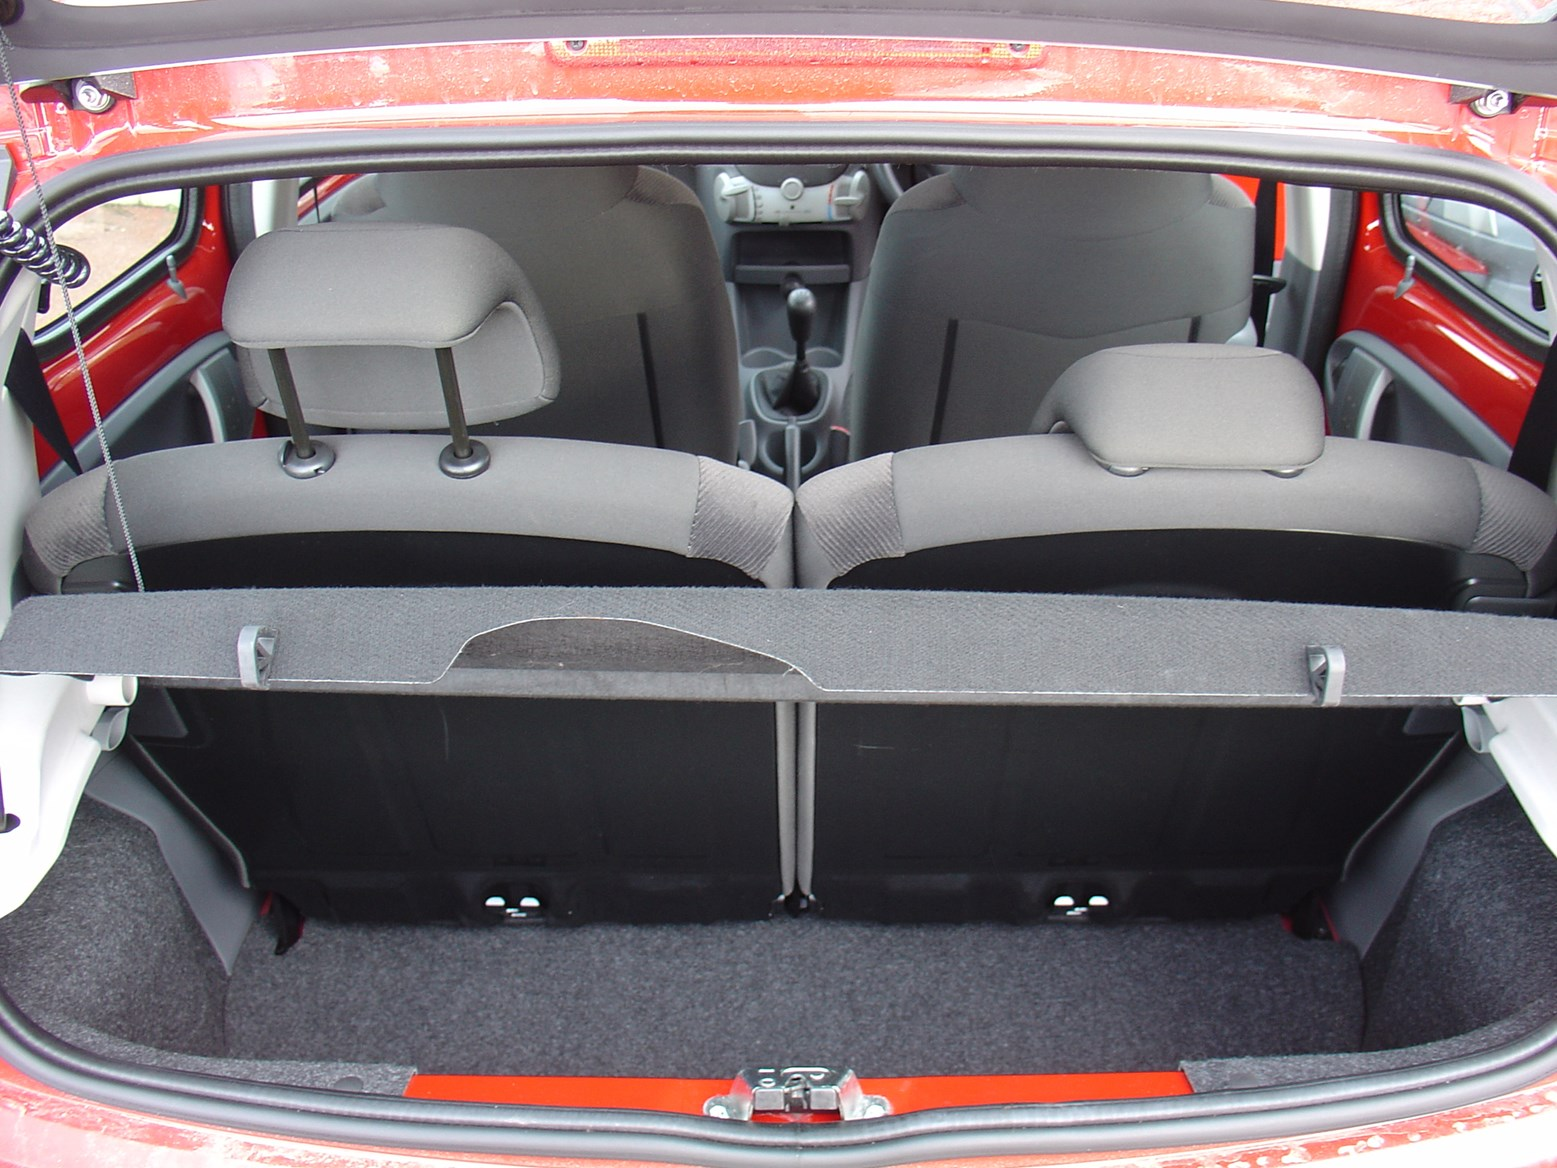 Citron C1 Hatchback 2005 2014 Features Equipment And Citroen Ds5 Wiring Diagram View All Images Of The 05 14